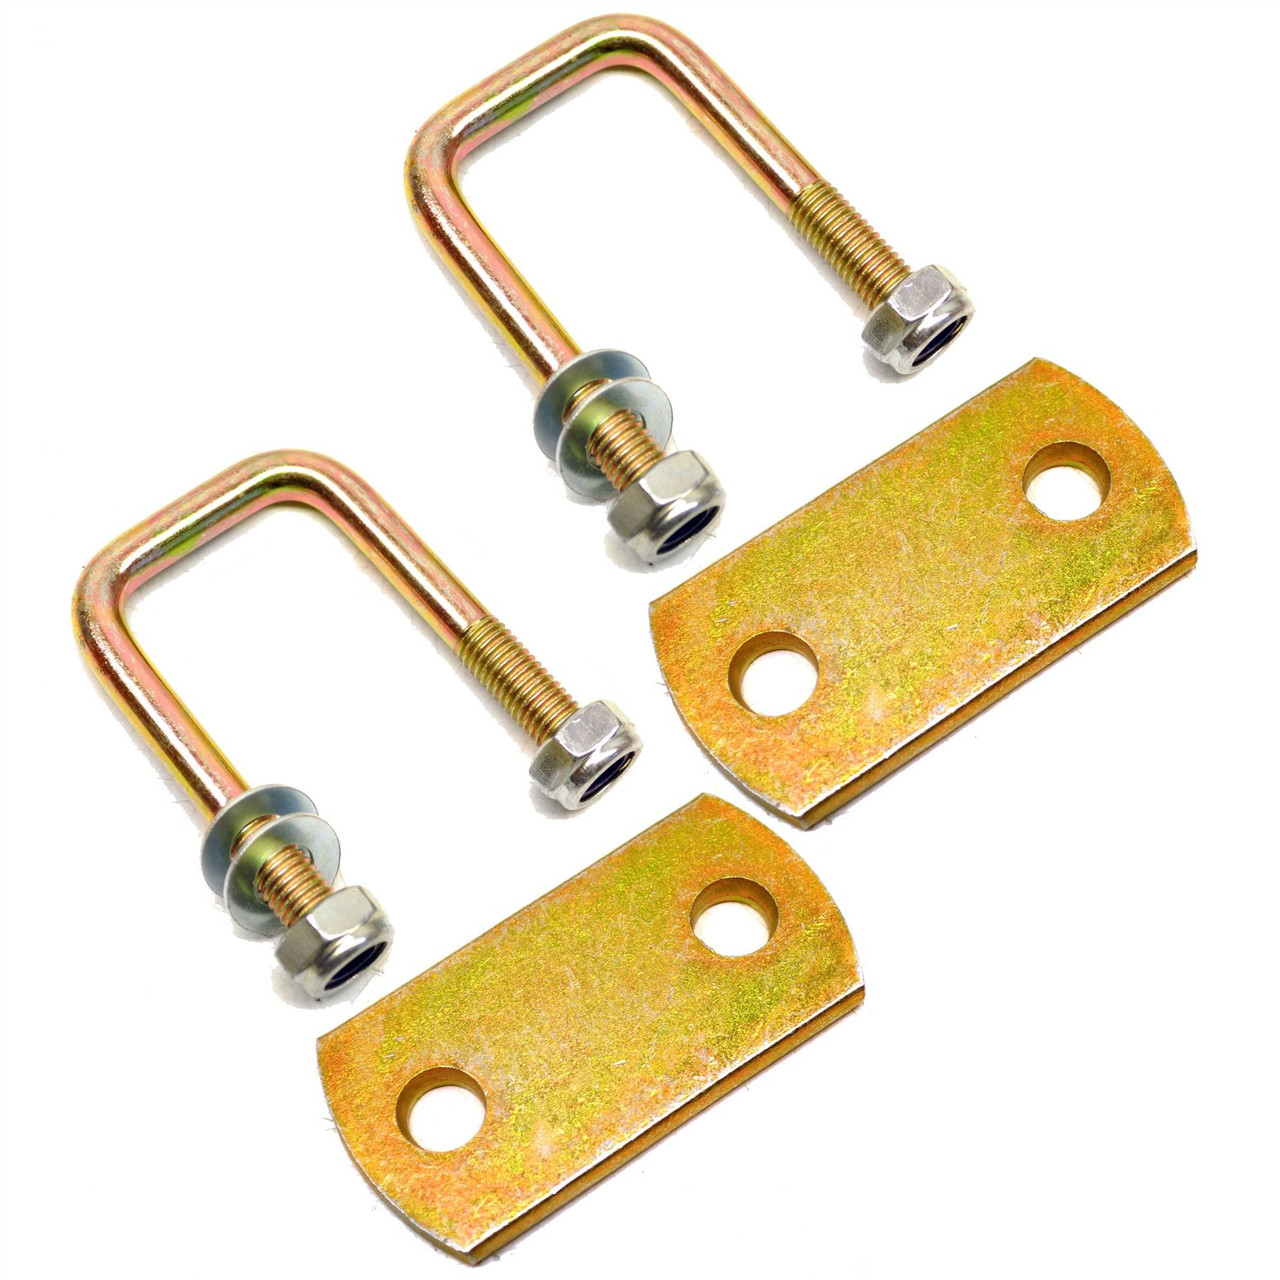 M10 40mm x 70mm UBolt NBolt 1 PAIR with Plates and Nuts HIGH TENSILE UBR01/04